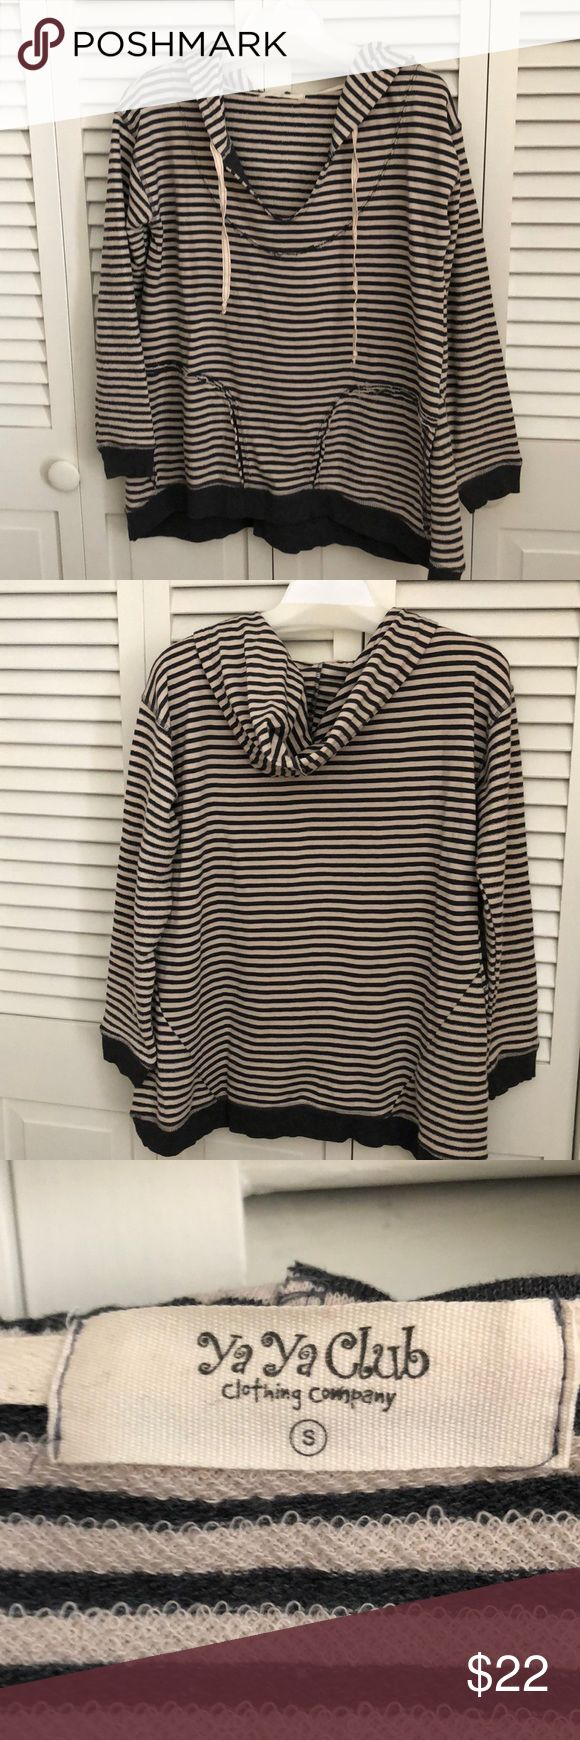 "Ladies sweatshirt This is a ya ya club striped hoodie with pockets. It is a small but runs large for a small. It is gray and ivory 1/4"" stripes. Worn once, like new! yaya club Tops Sweatshirts & Hoodies"